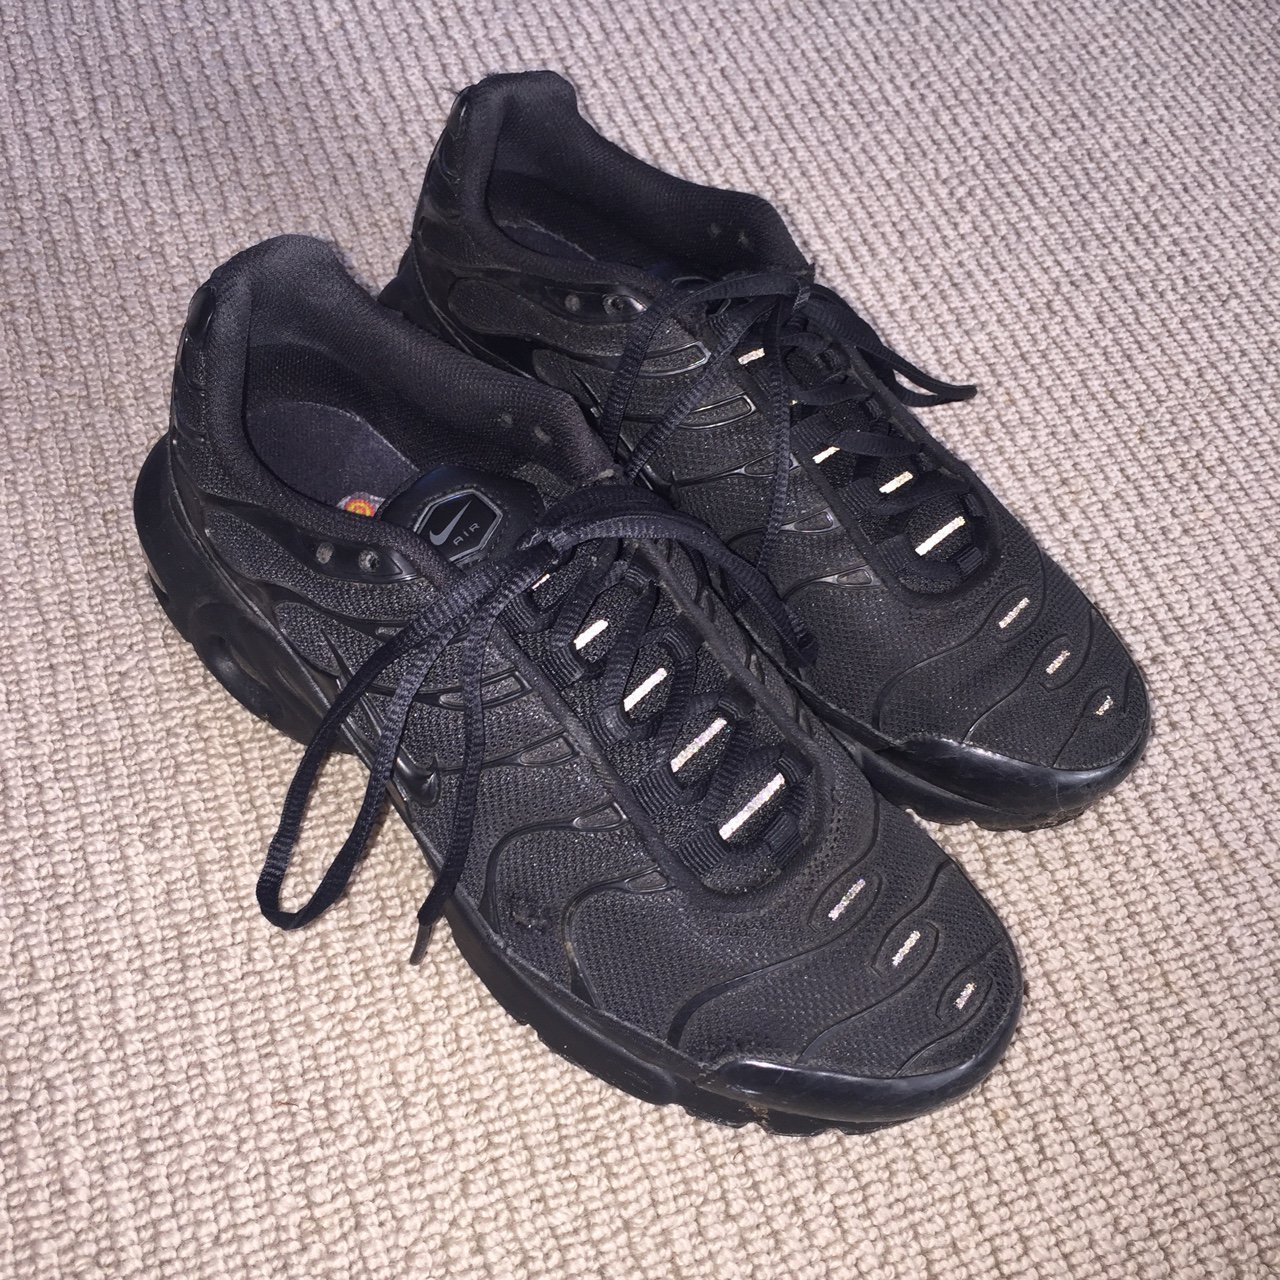 7a852123f443 Nike tn tuned trainers   all black with reflective glow   5 - Depop